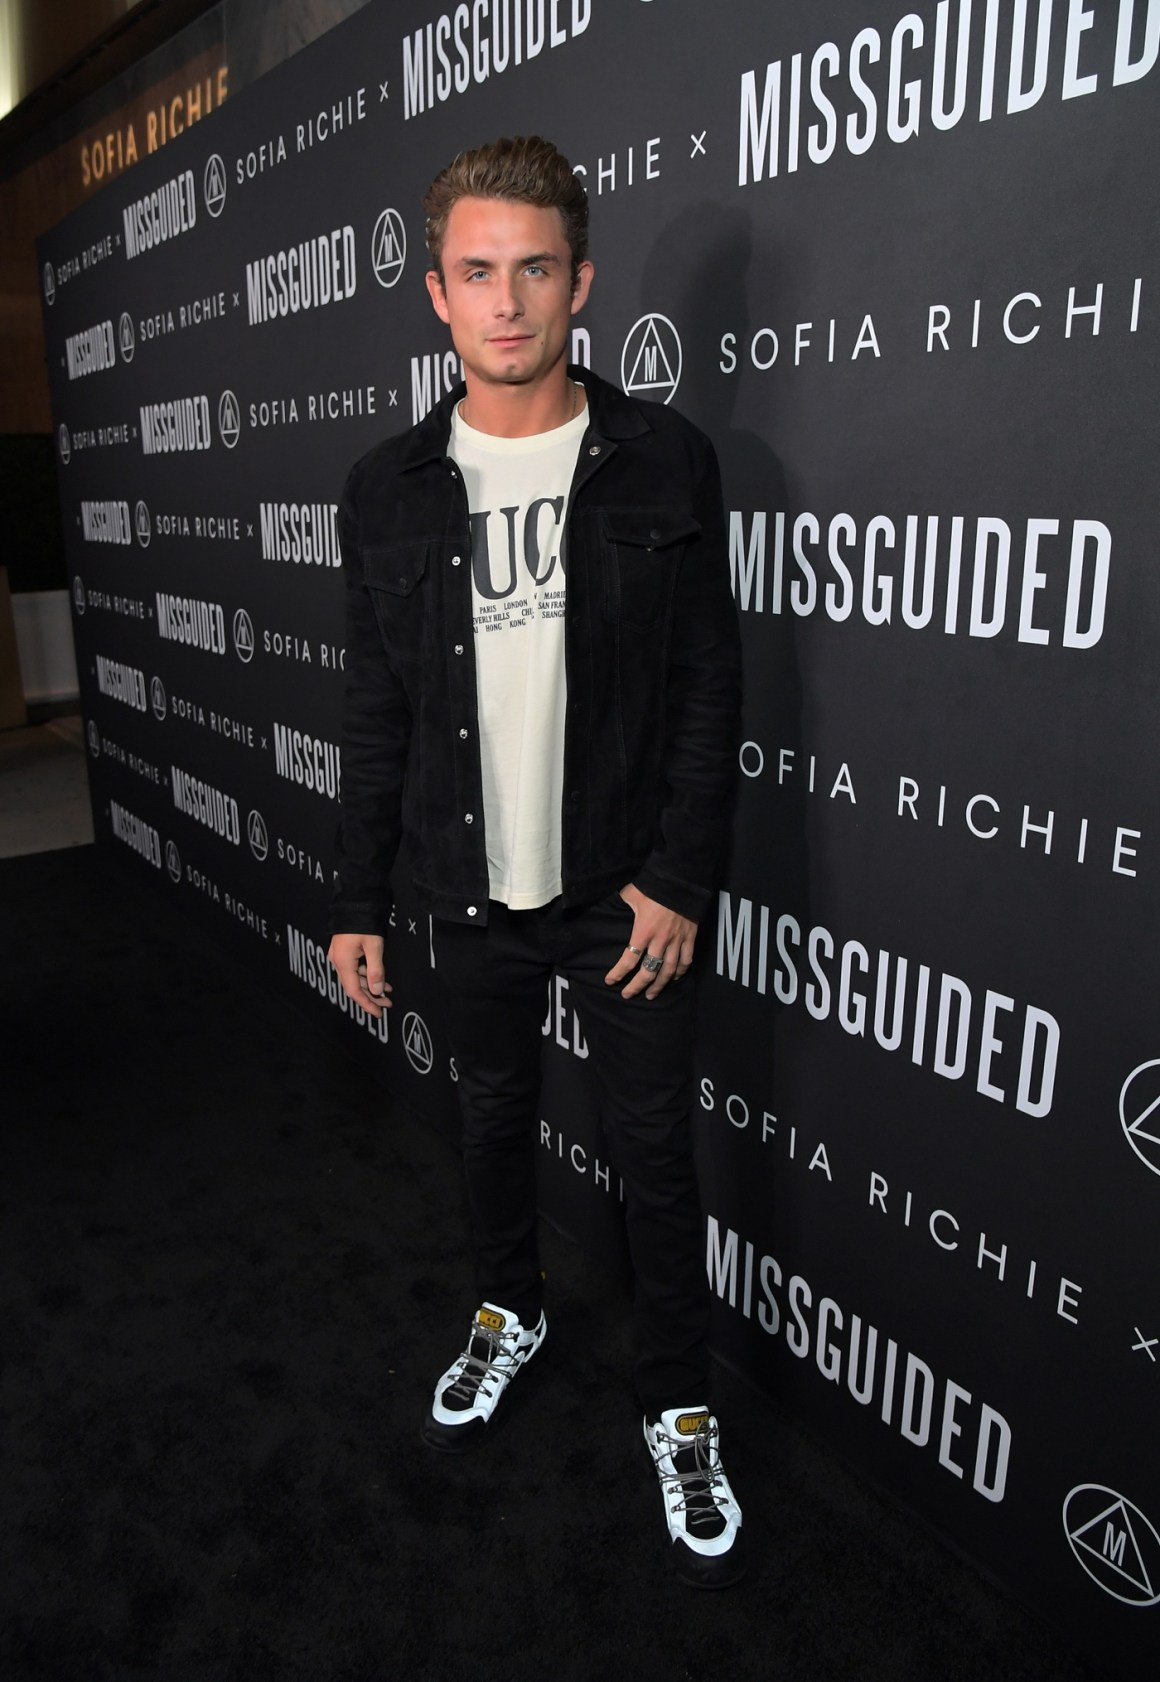 Sofia Richie x Missguided Launch Party